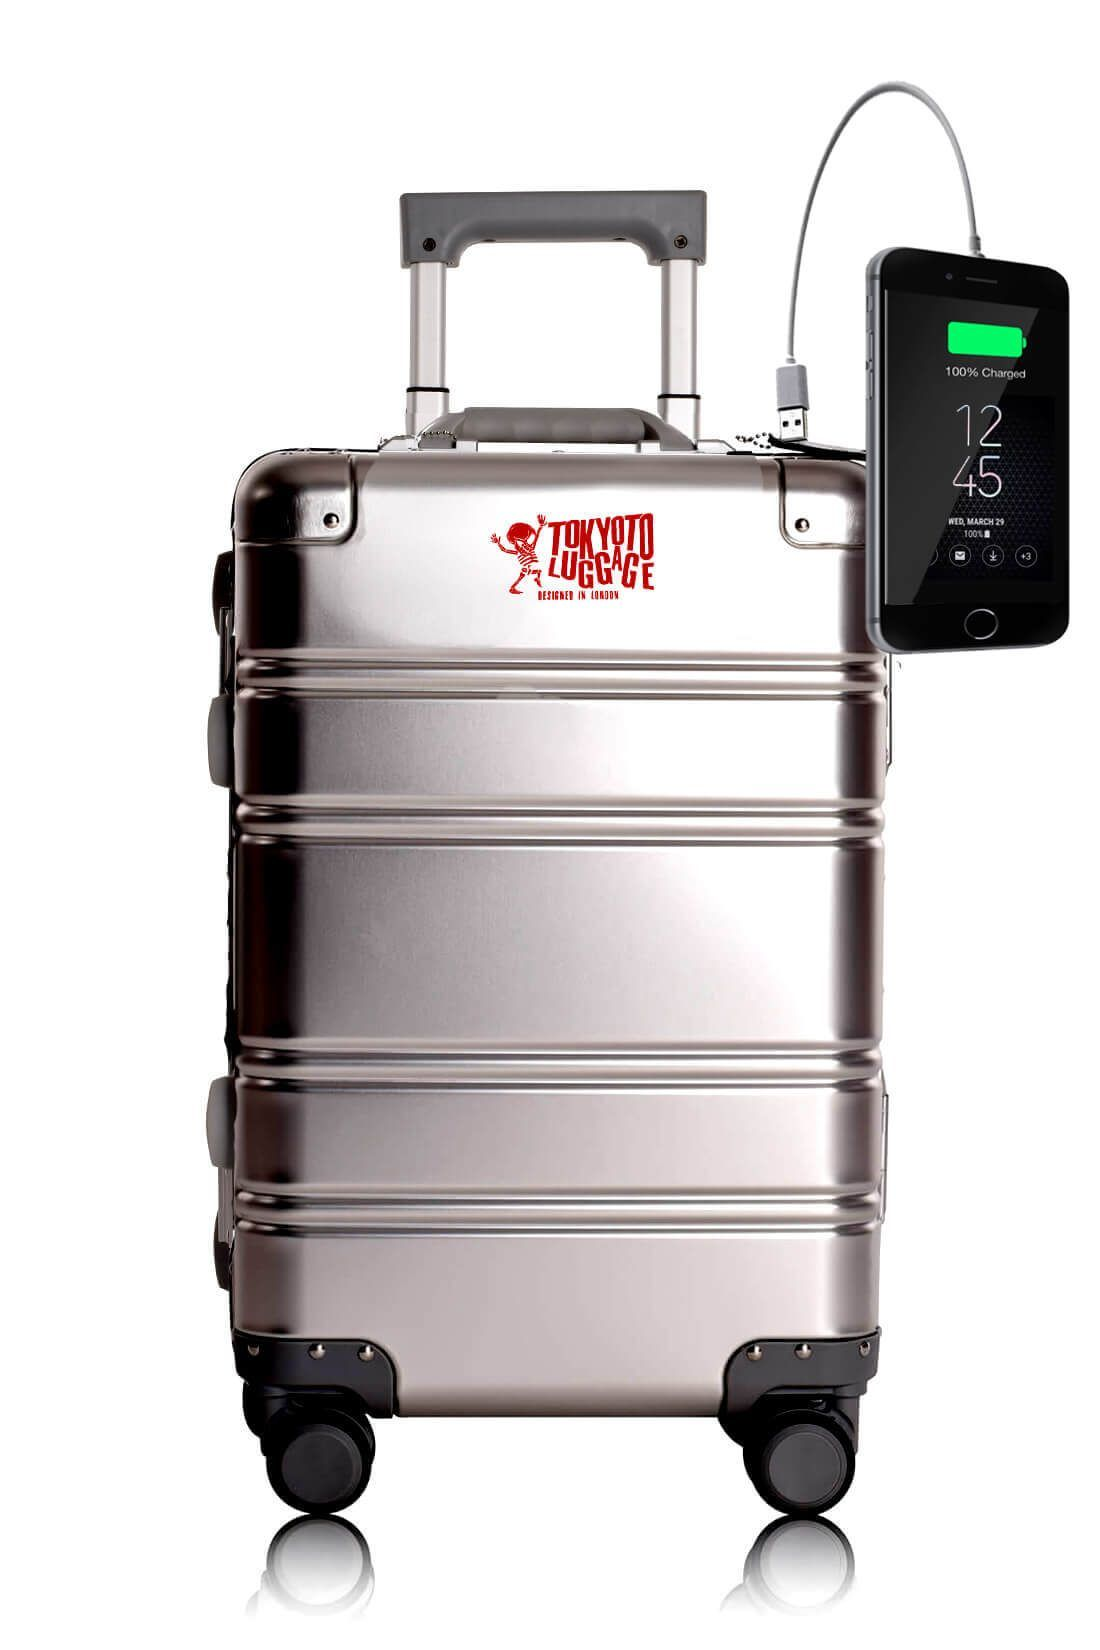 Aluminum Metal Hand Trolley Cabin Luggage Suitcase Online Powerbank USB Charger TOKYOTO SILVER LOGO